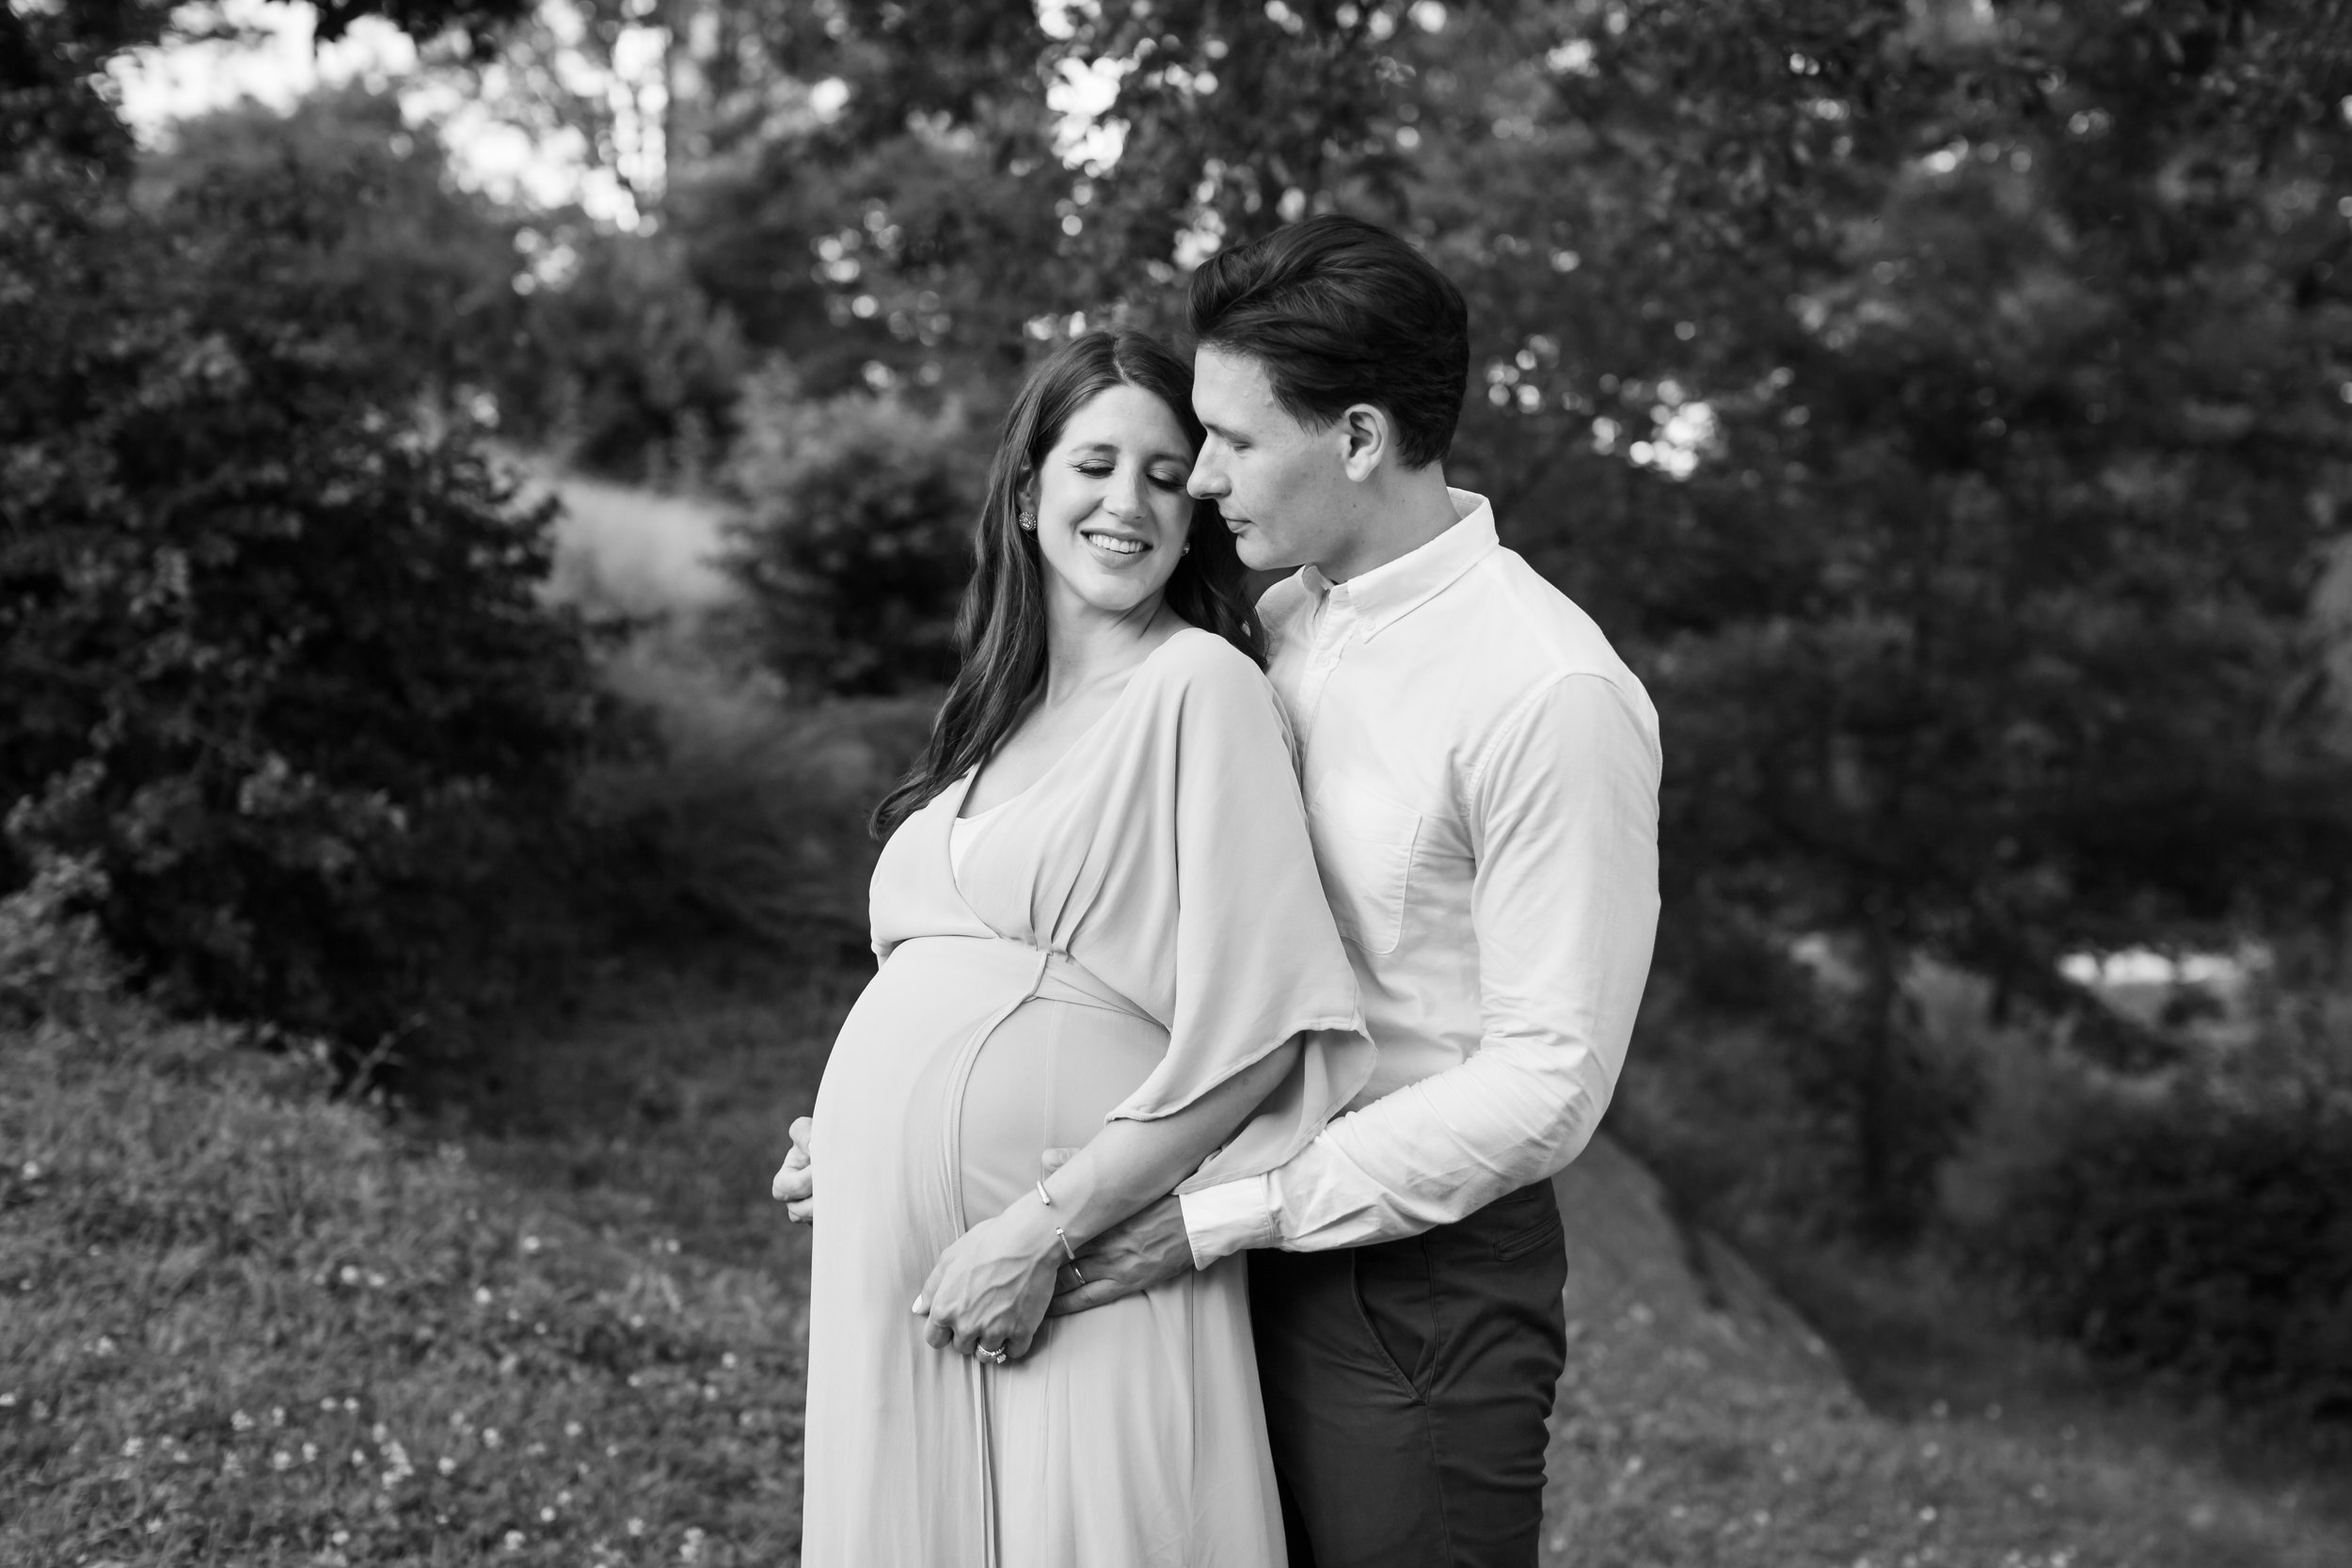 Central Park black and white maternity session by Helene Stype - couple holding hands and looking at each other